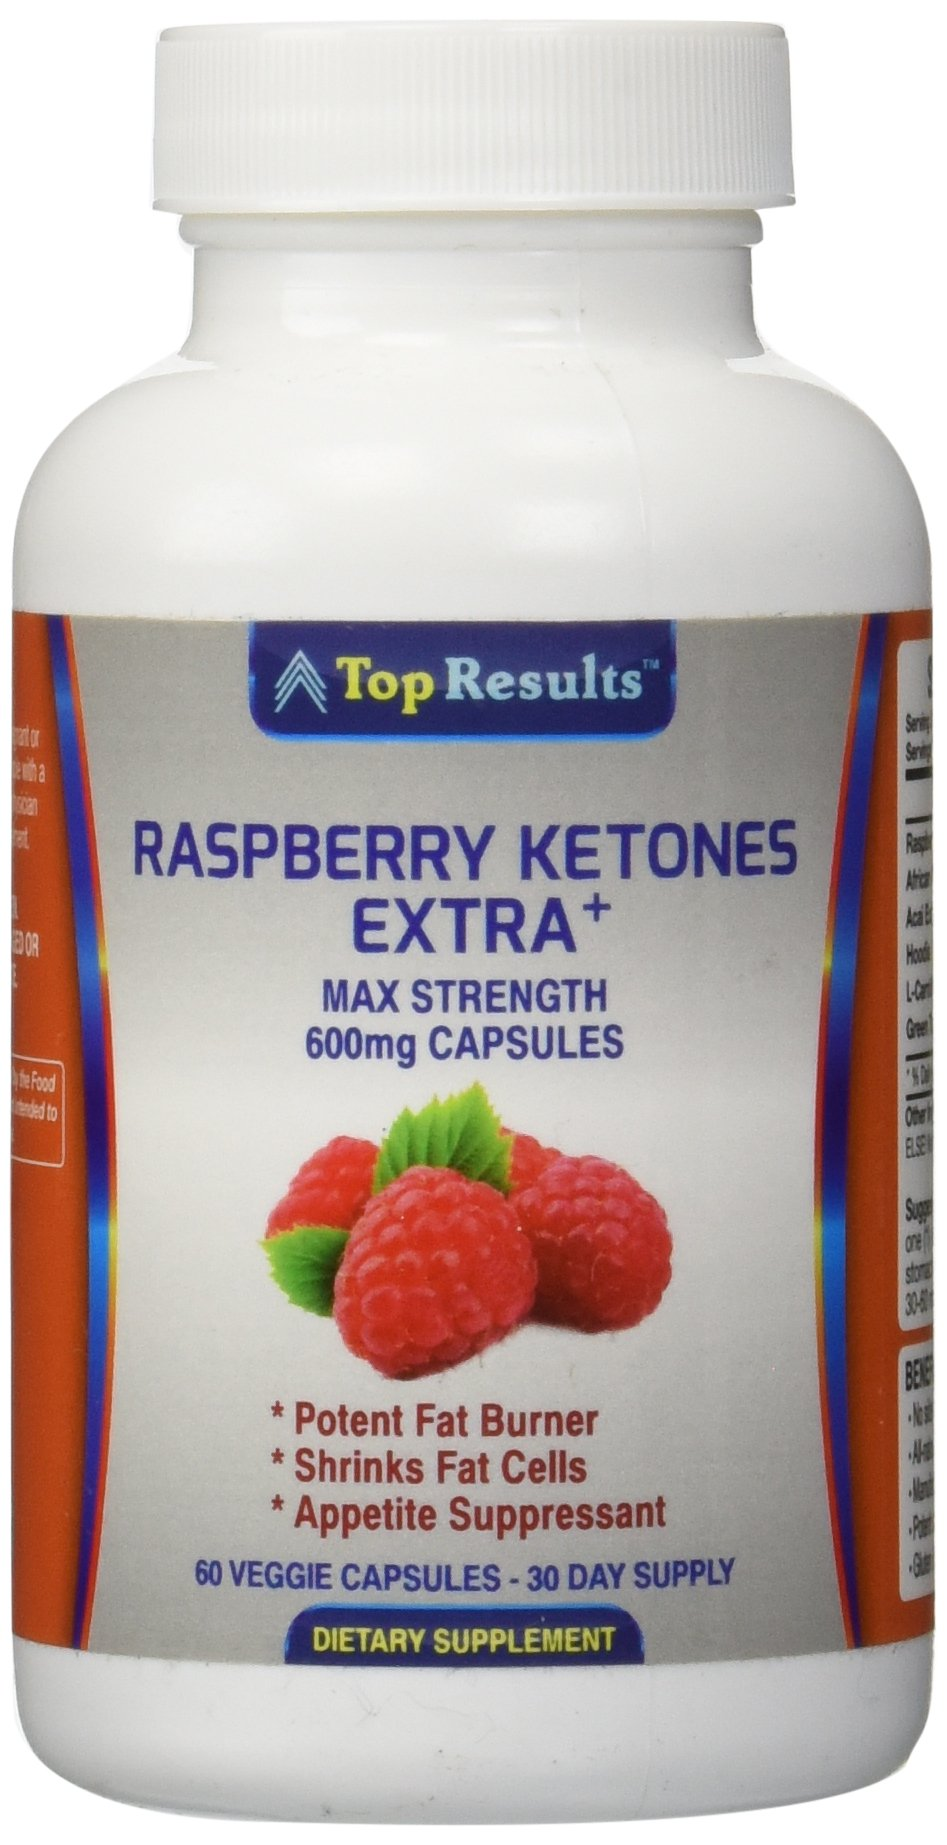 2 capsules per serving of 600 mg capsules. Pure Raspberry Ketones 500mg PLUS + African Mango Extract, Acai Berry Extract, Hoodia Gordonii, L-Carnitine and Green Tea Extract per day. Proven to be more effective than just Keytones alone - A powerful natural fat burner. This WILL burn your fat,